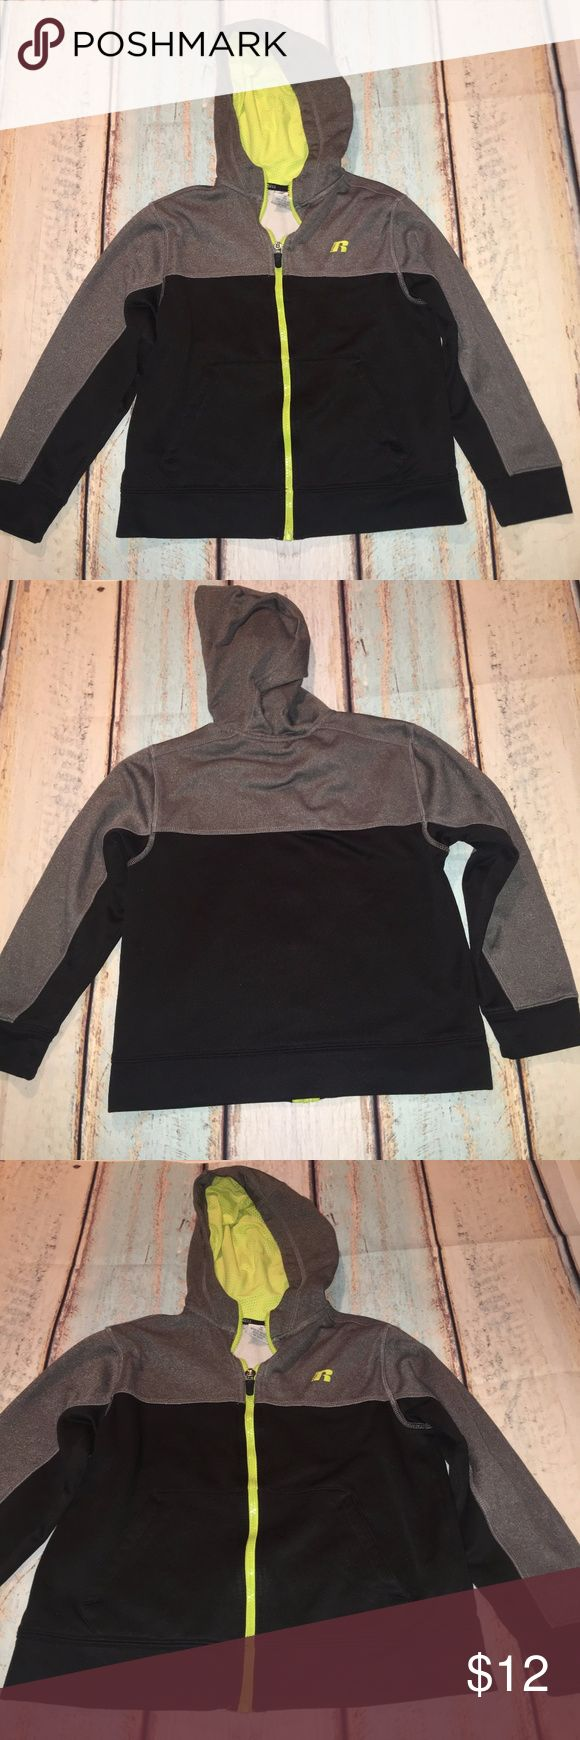 Boy's Russel Zip Up Hoodie Boy's Zip Up Hoodie by Russel Athletics. Pre-Loved. Black/Gray with Neon Yellow Trim. Size M/8. Russell Athletic Shirts & Tops Sweatshirts & Hoodies